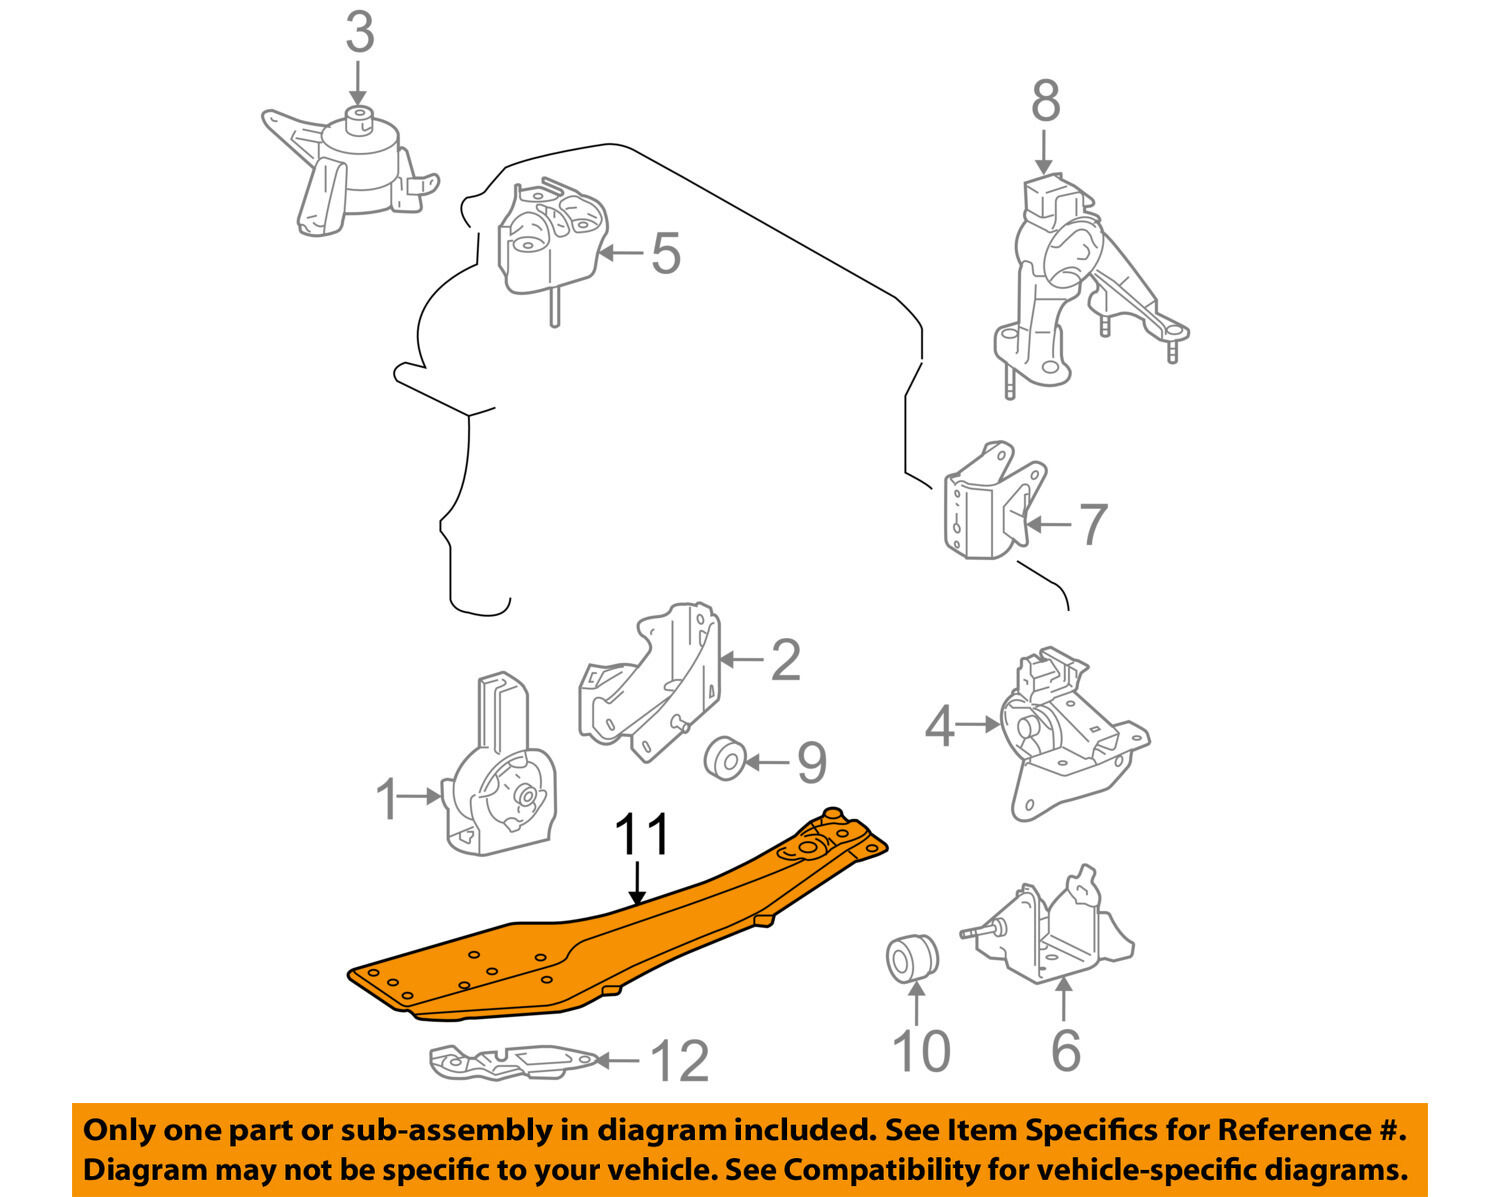 Scion Toyota Oem 05 10 Tc Engine Motor Transmission Center Bracket Diagram Picture 1 Of 2